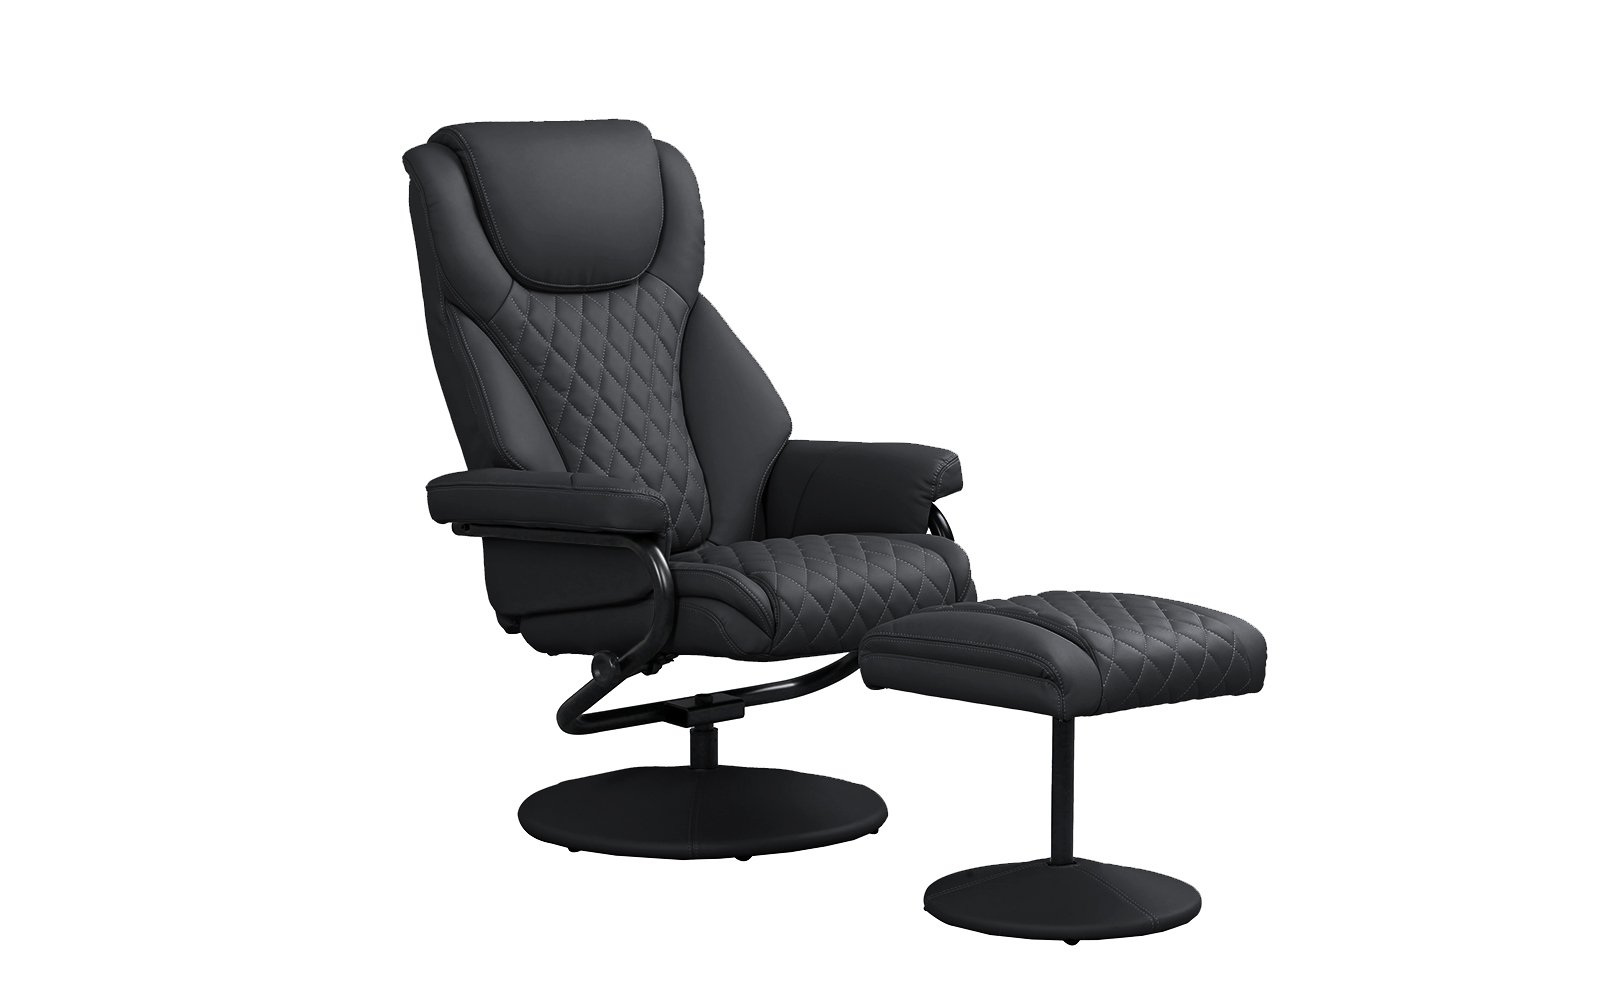 Divano Roma Furniture Office Swivel Chair with Footstool, Faux Leather Reclining Executive and Gaming Chairs (Black)